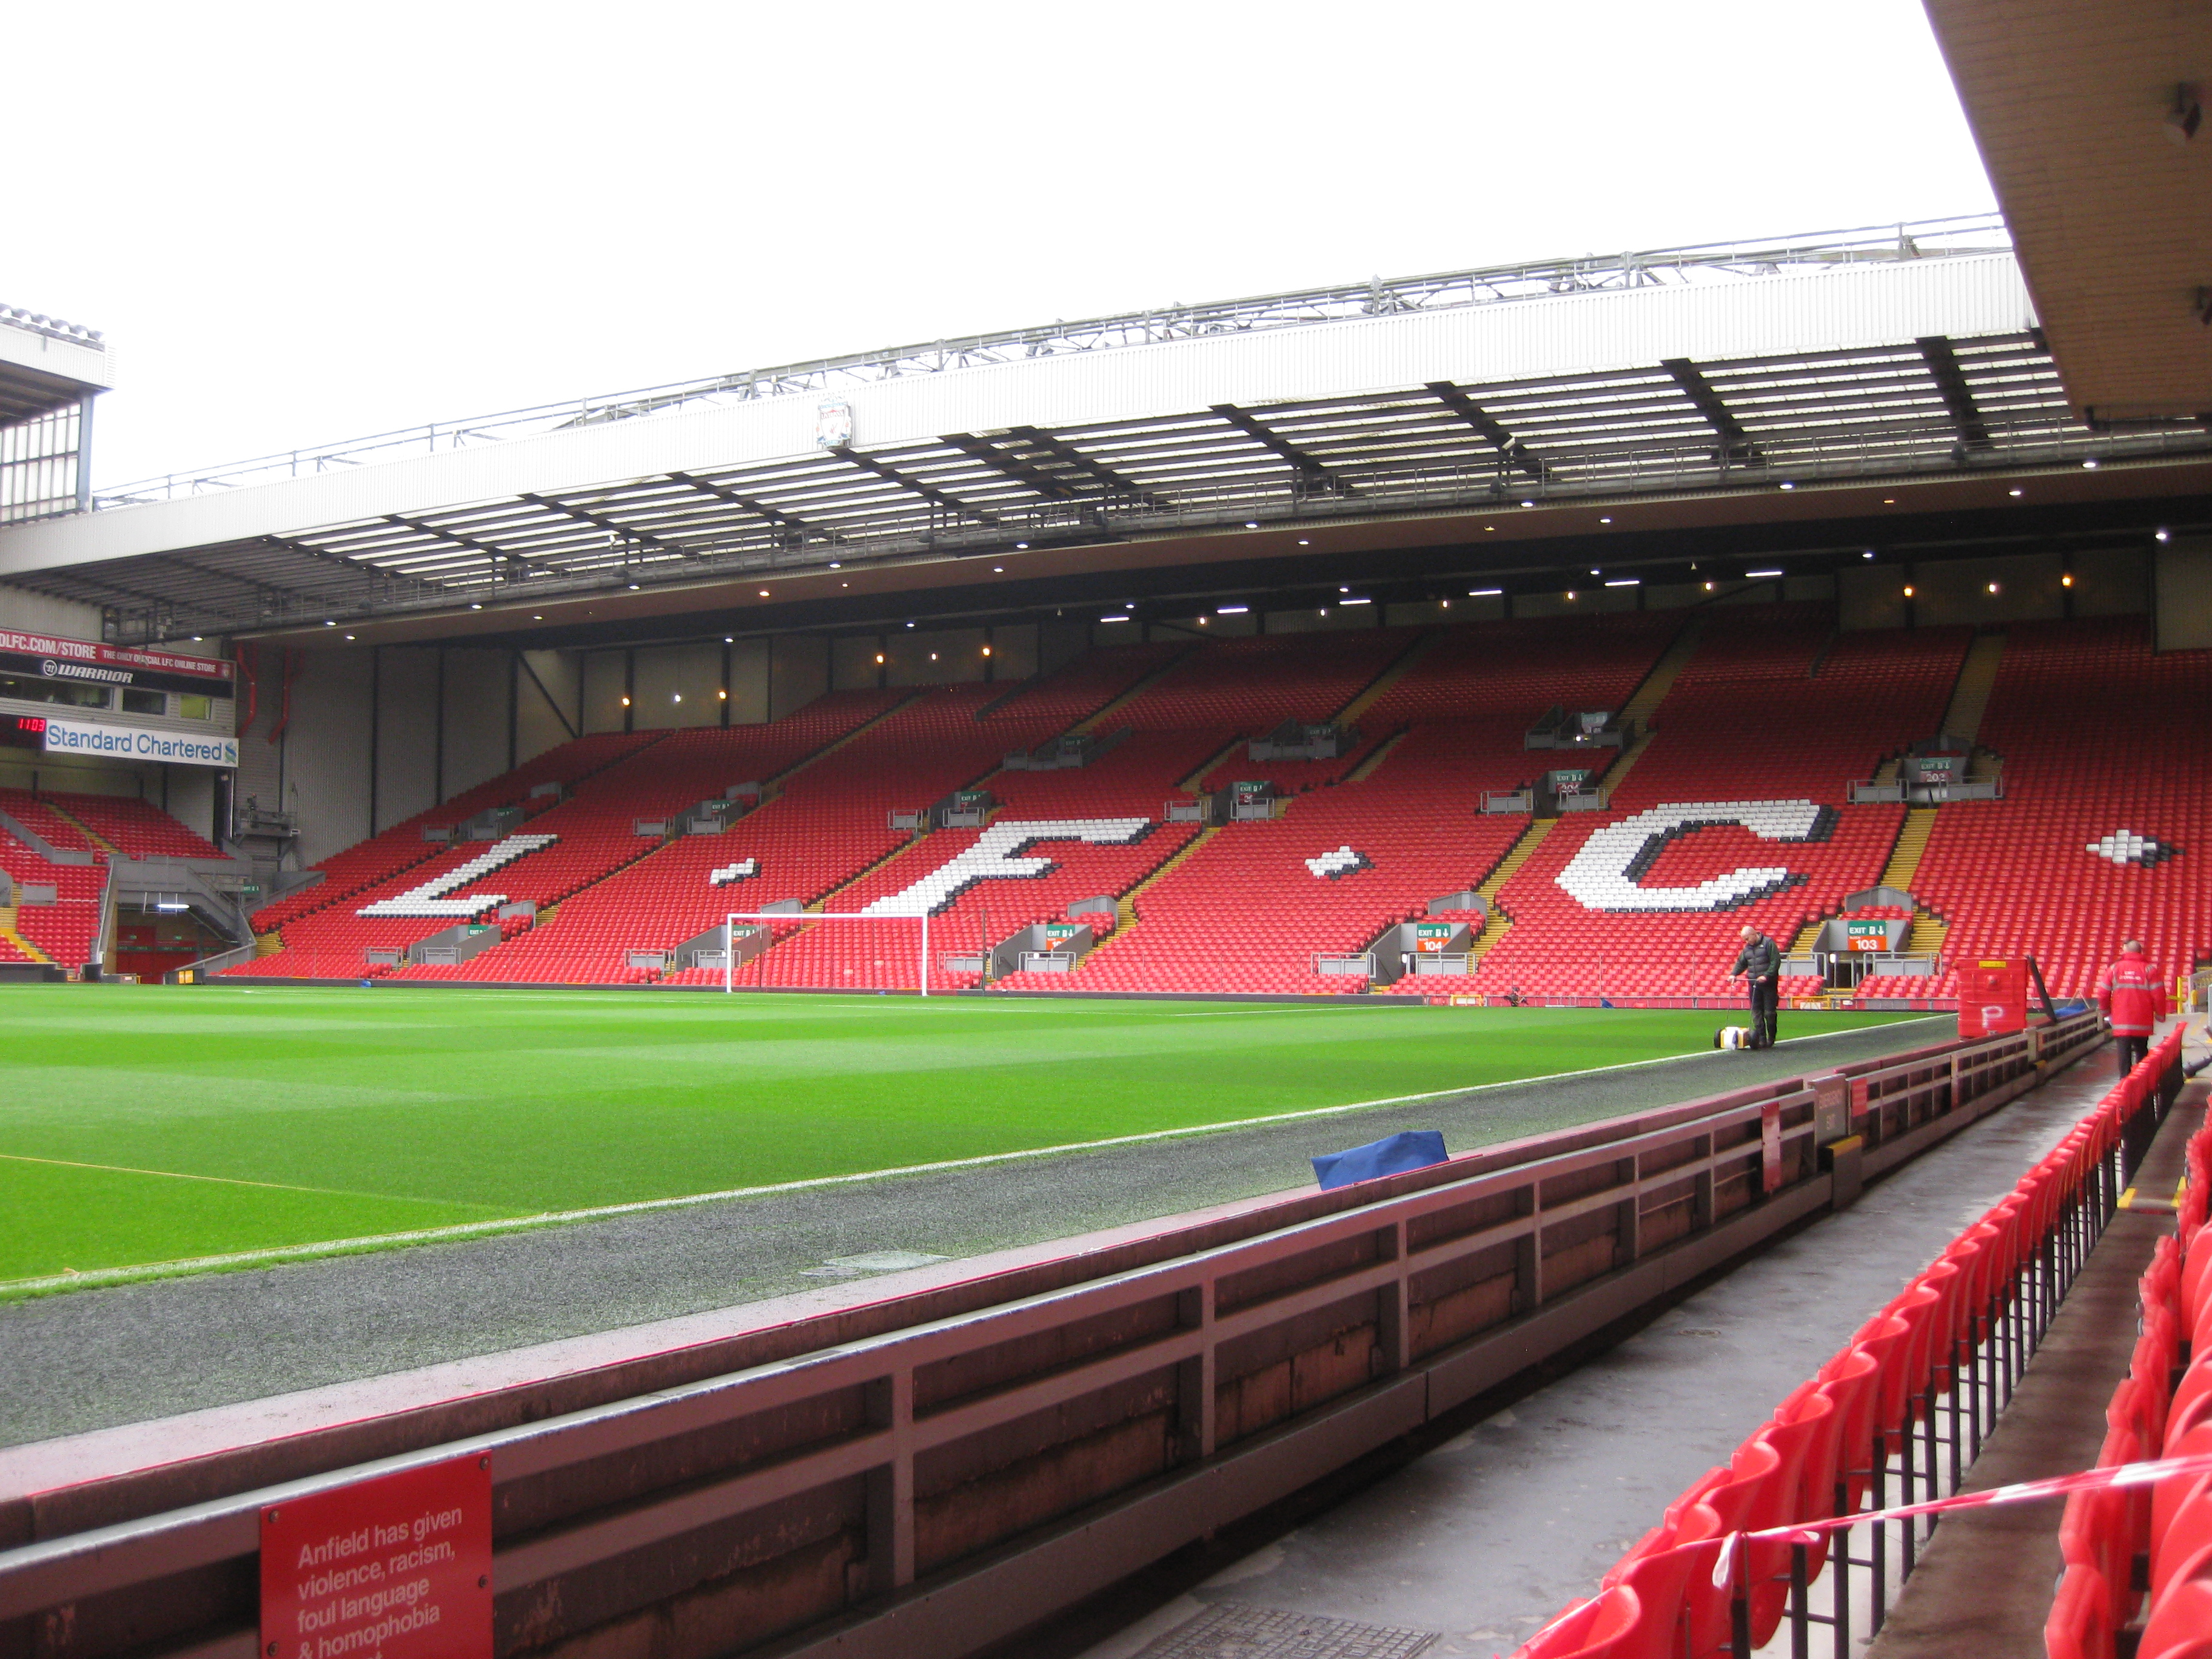 The Spion Kop